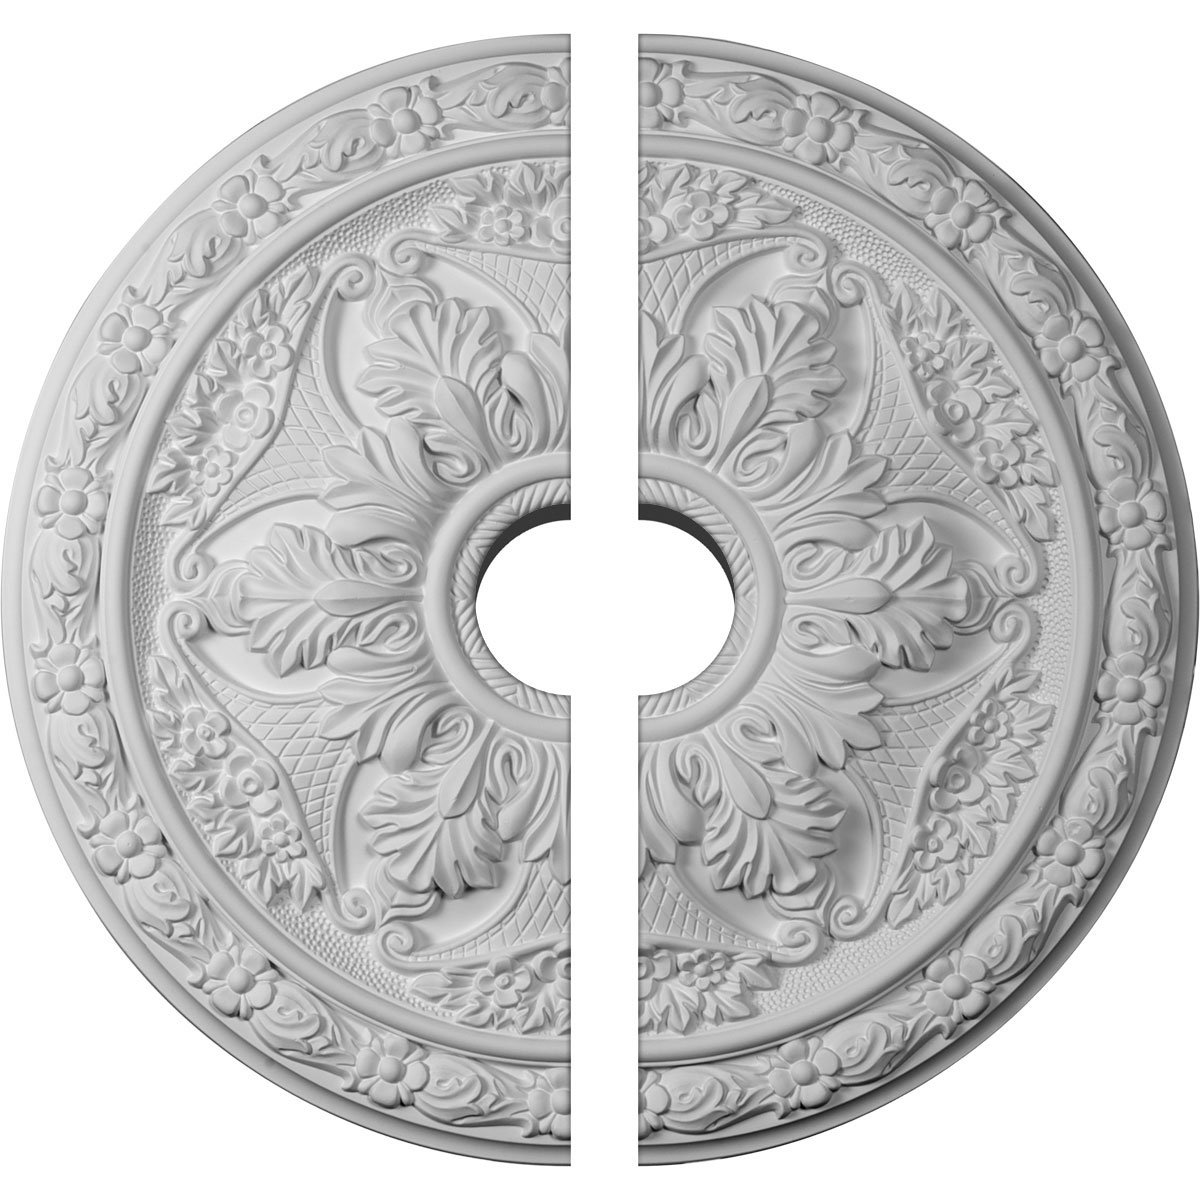 Ekena Millwork CM20BL2-03500 20'' OD ID x 1 5/8'' P Baile Ceiling Medallion, Two Piece (Fits Canopies up to 3 1/2''), Factory Primed and Ready to Paint